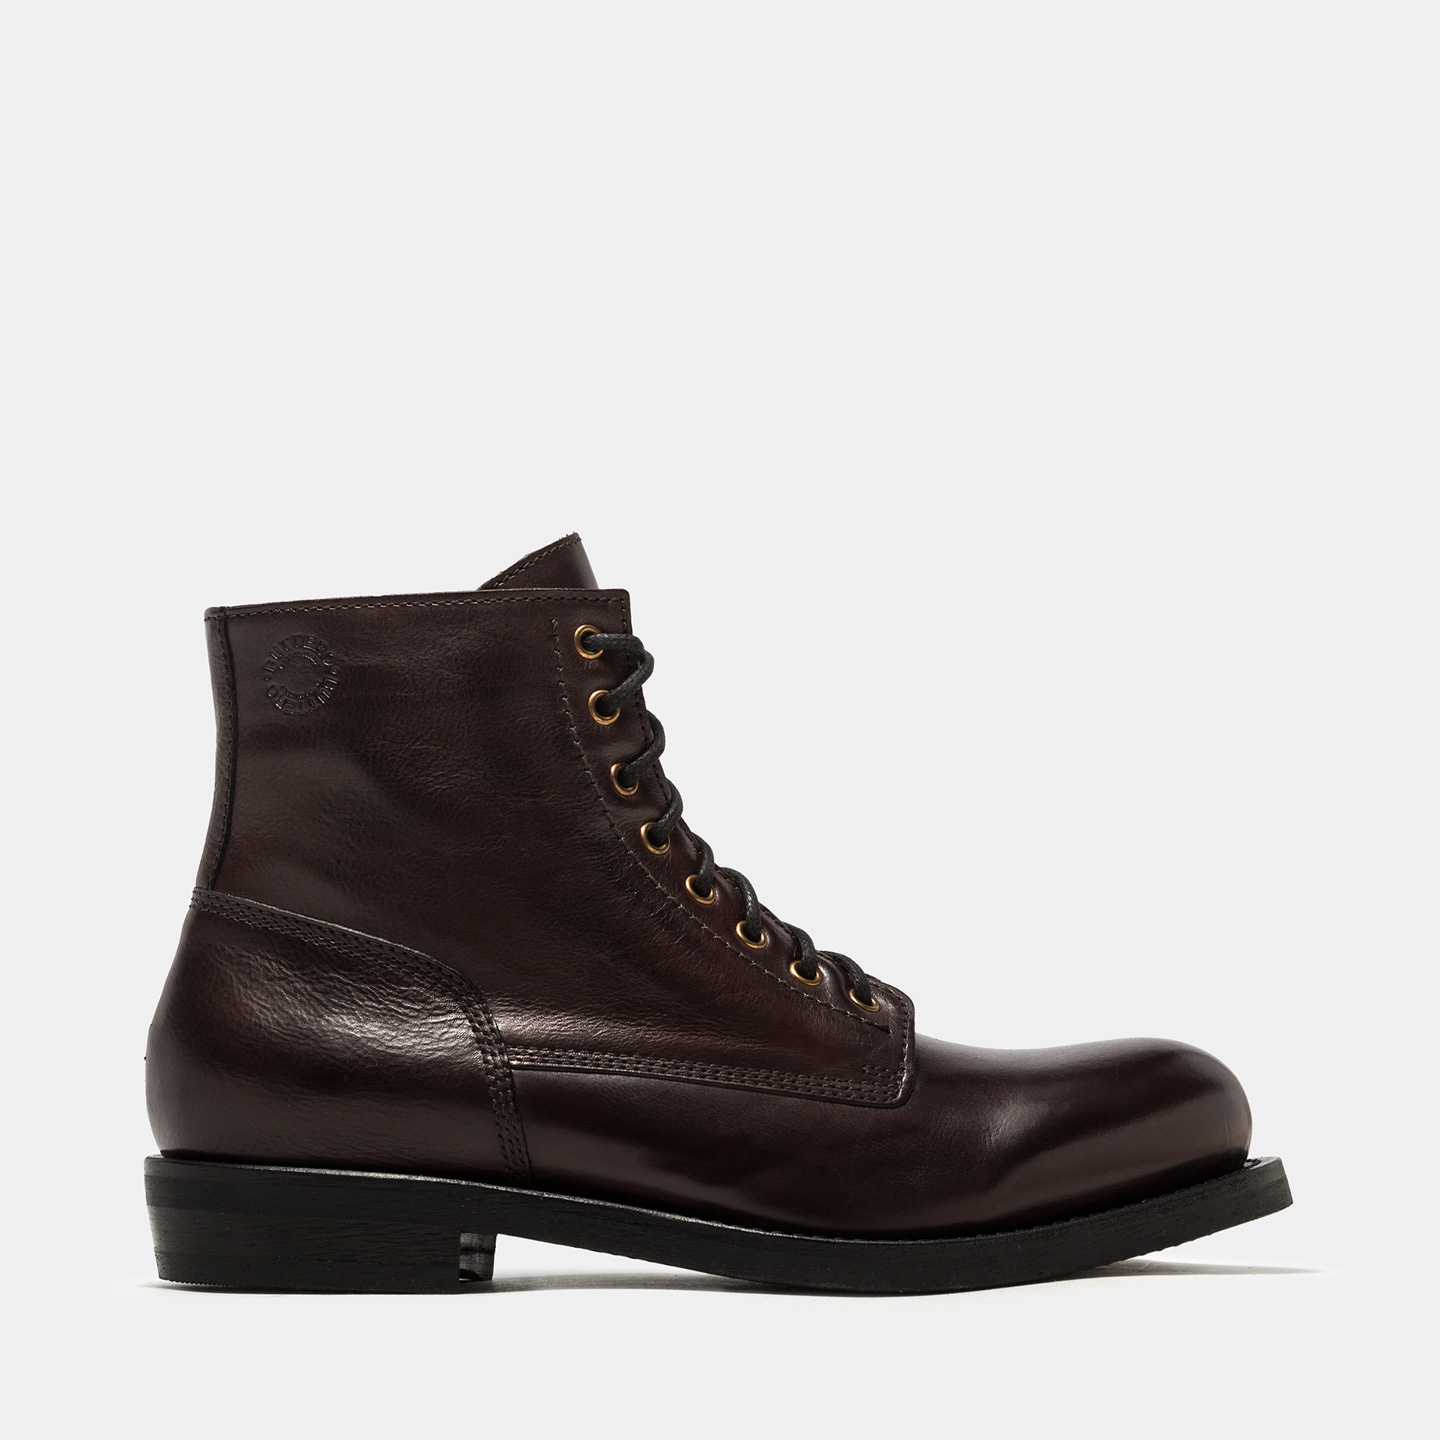 BUTTERO: DARK BROWN T.BONE HIGH-LACED BOOTS